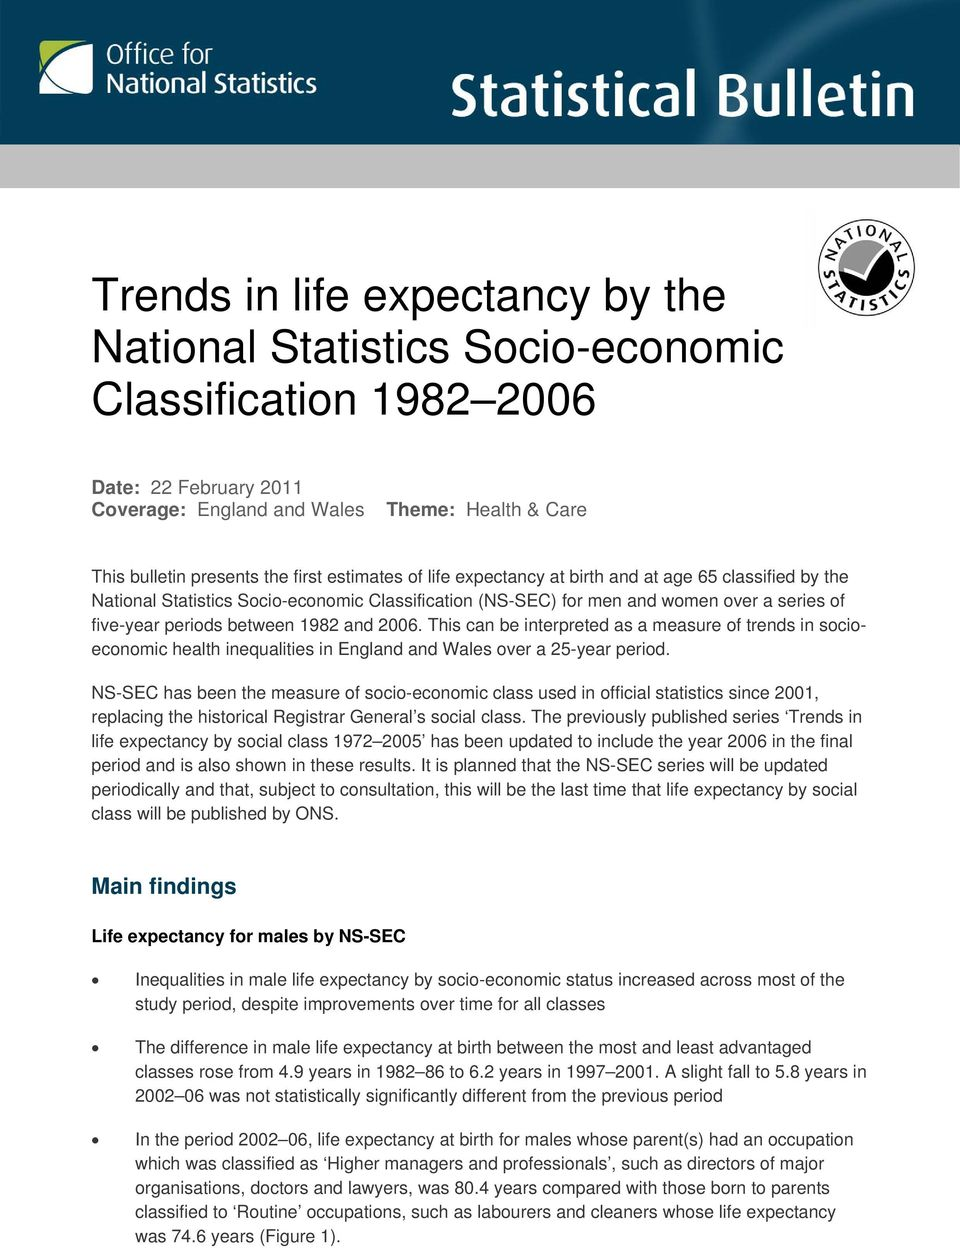 2006. This can be interpreted as a measure of trends in socioeconomic health inequalities in England and Wales over a 25-year period.